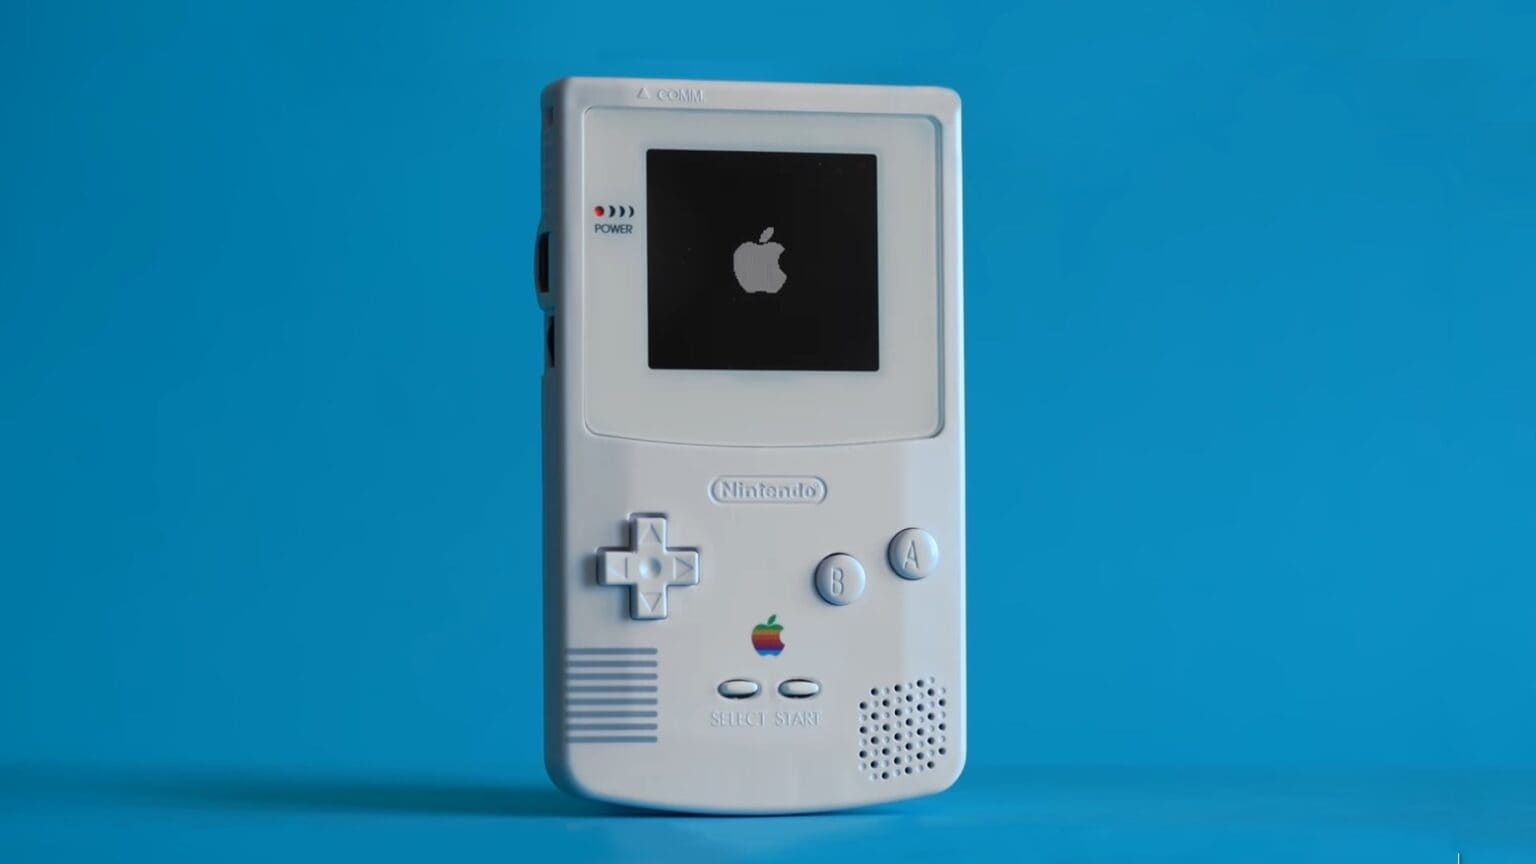 Not every Game Boy Color sits in a drawer. This one became an Apple TV remote.